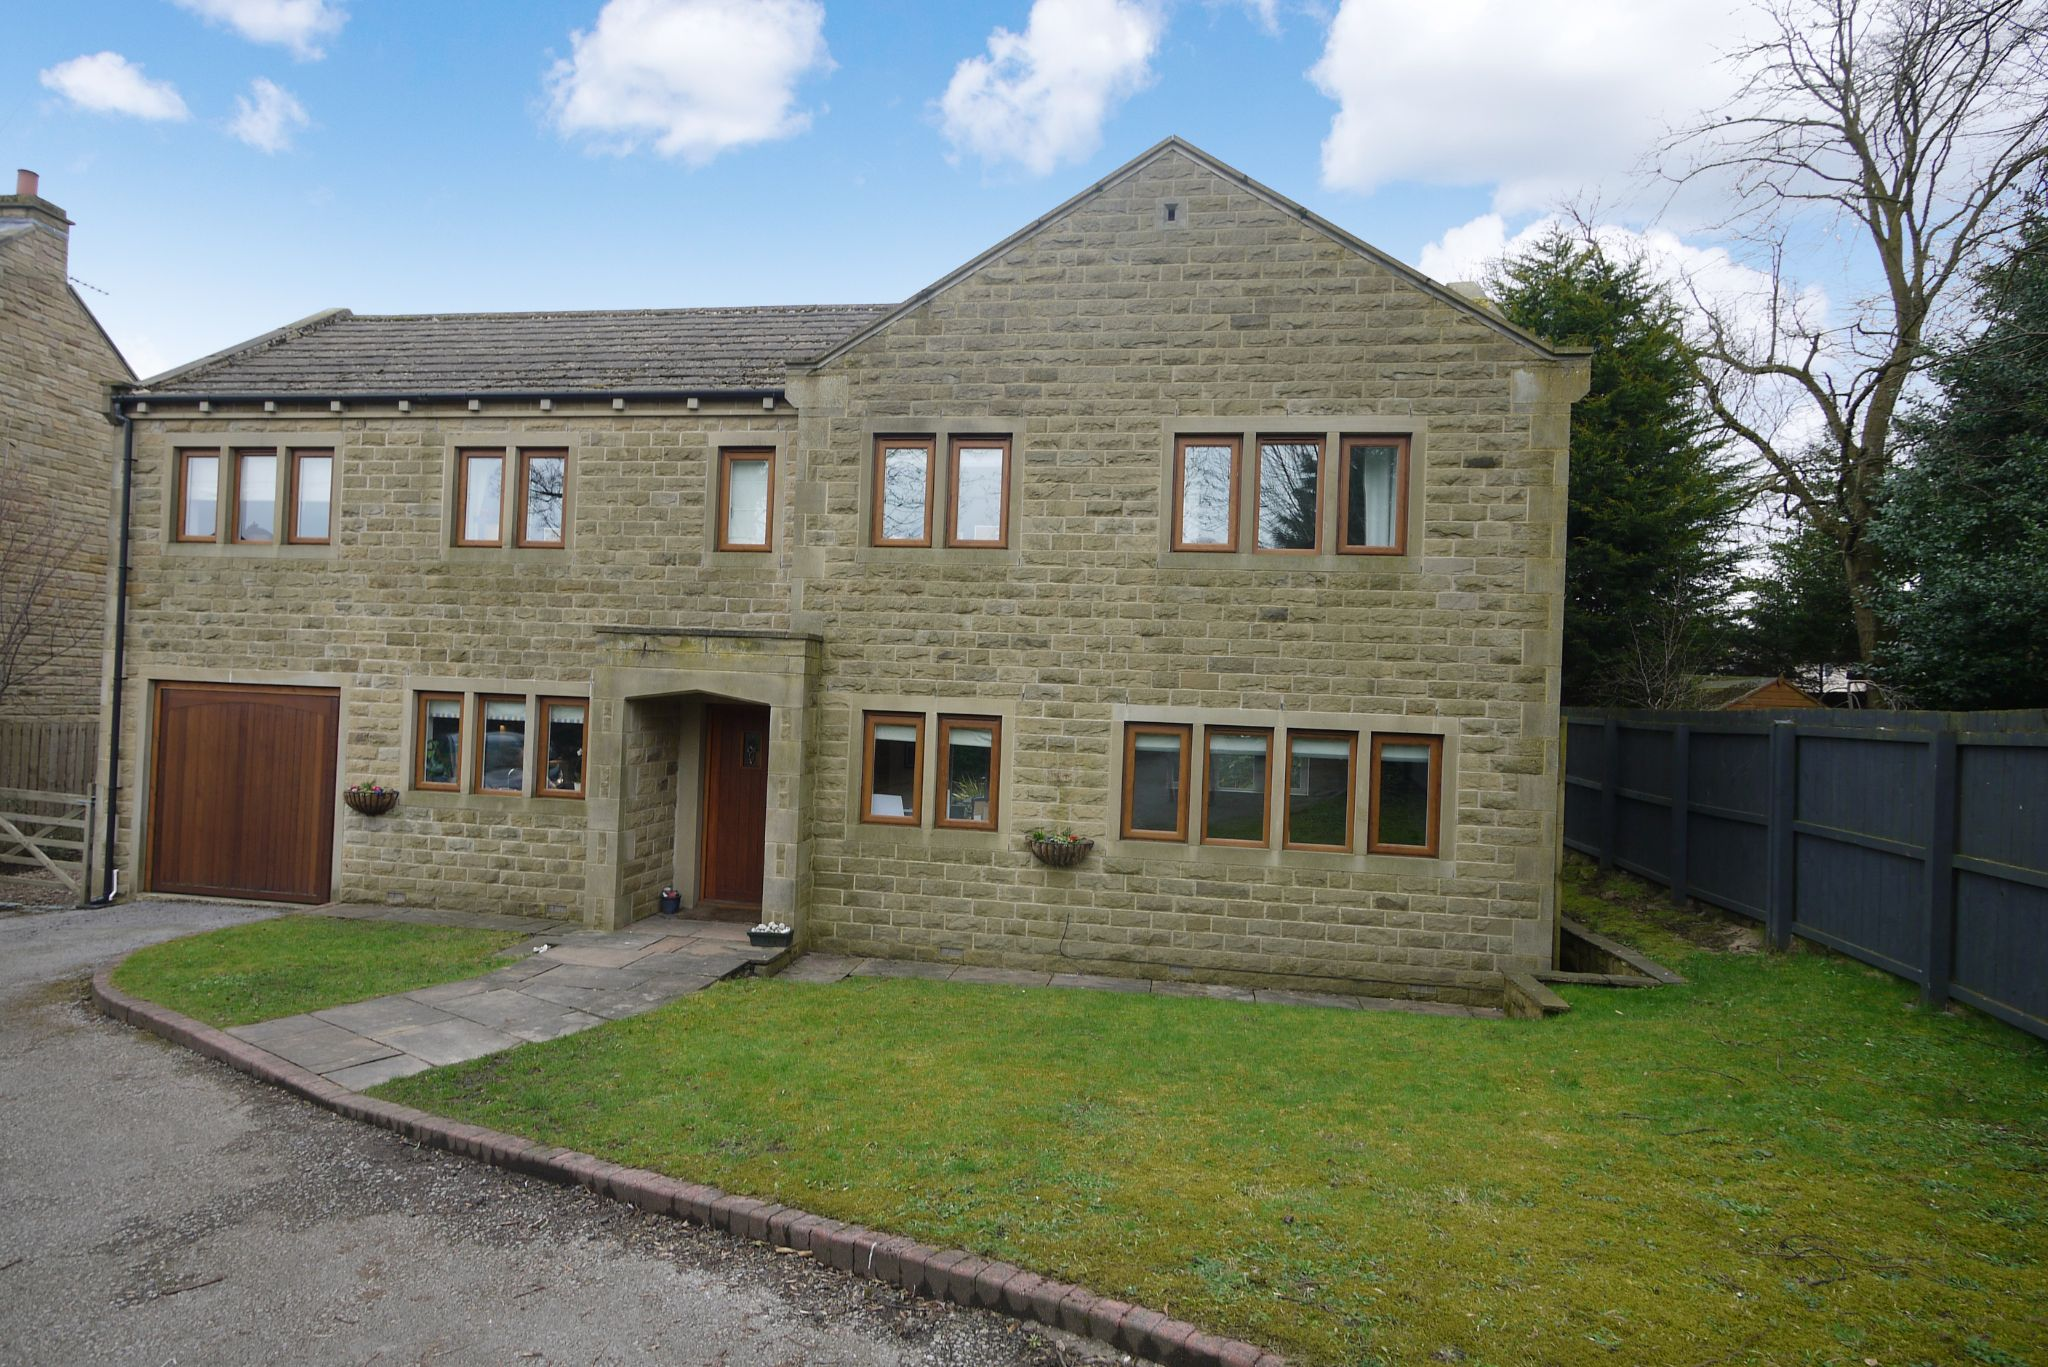 4 bedroom detached house For Sale in Brighouse - Photograph 14.